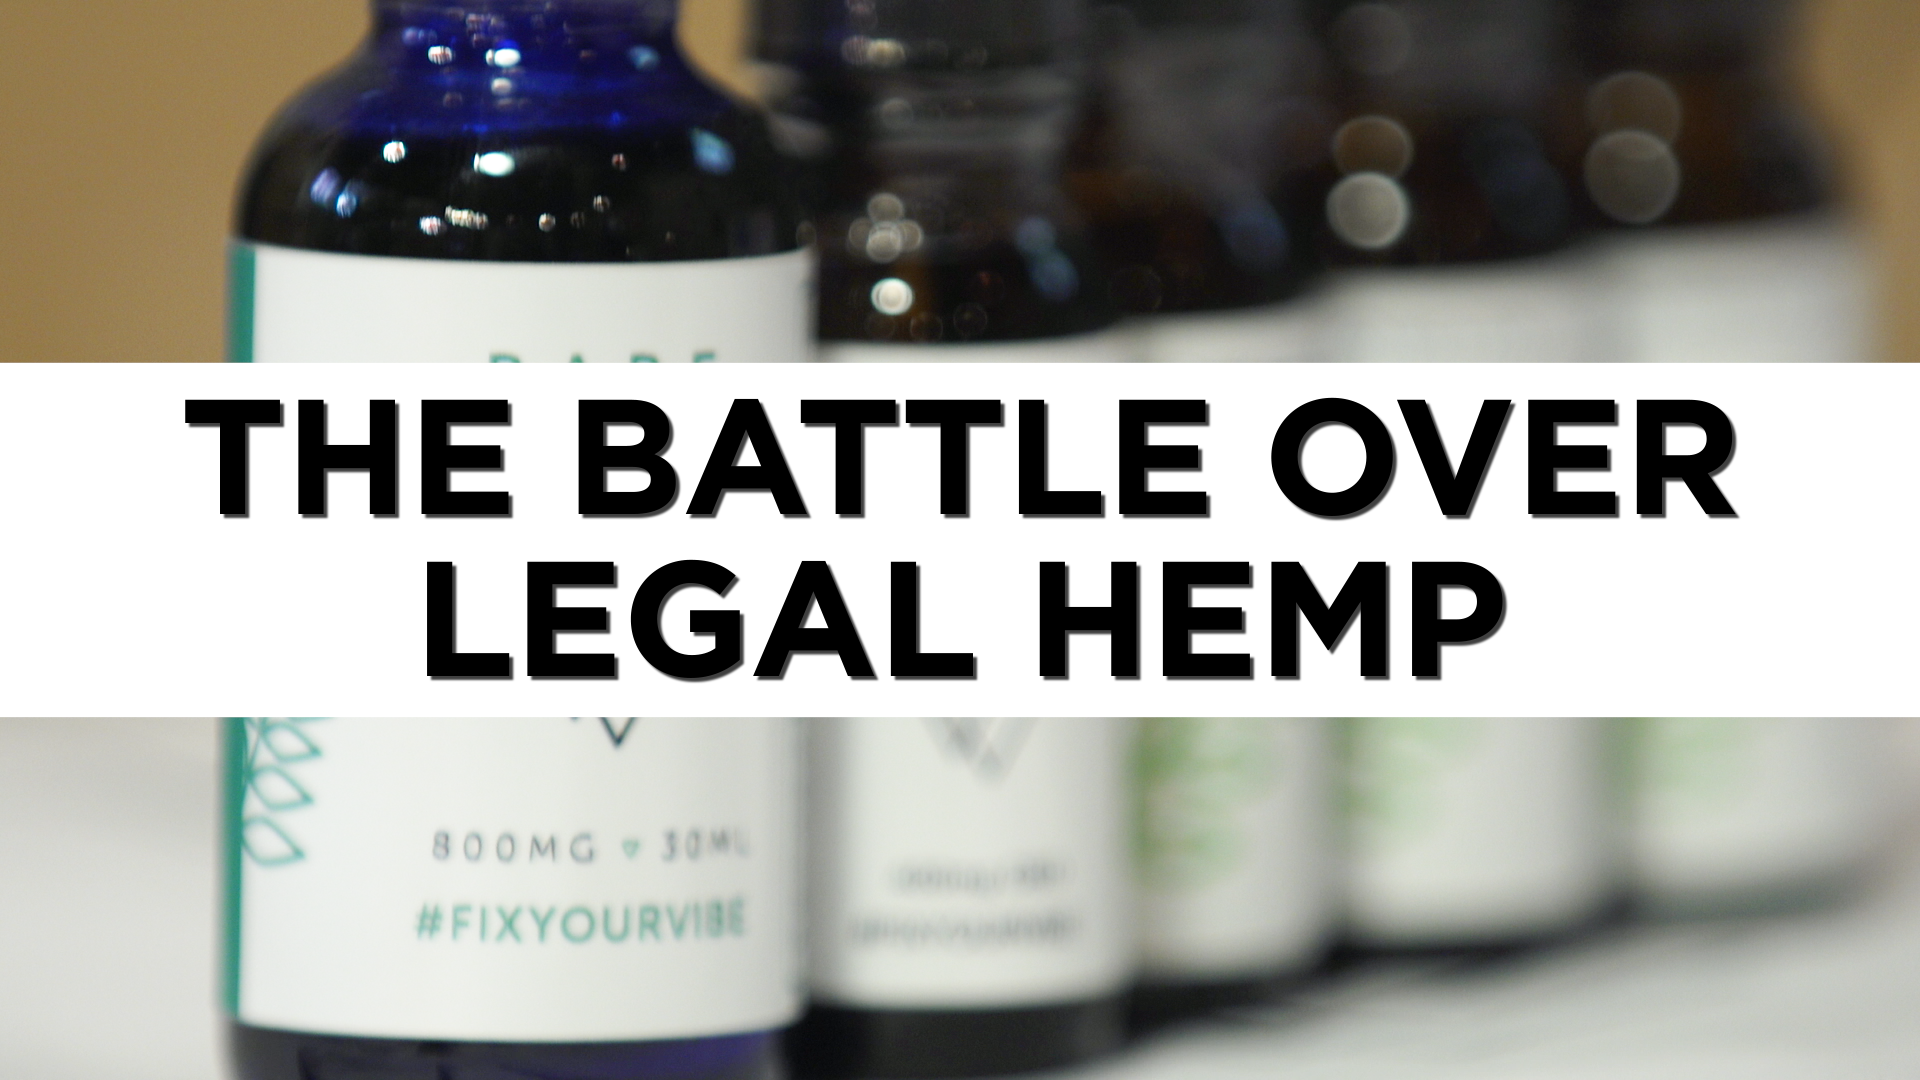 Hemp entrepreneurs say big retailers unfairly dominate